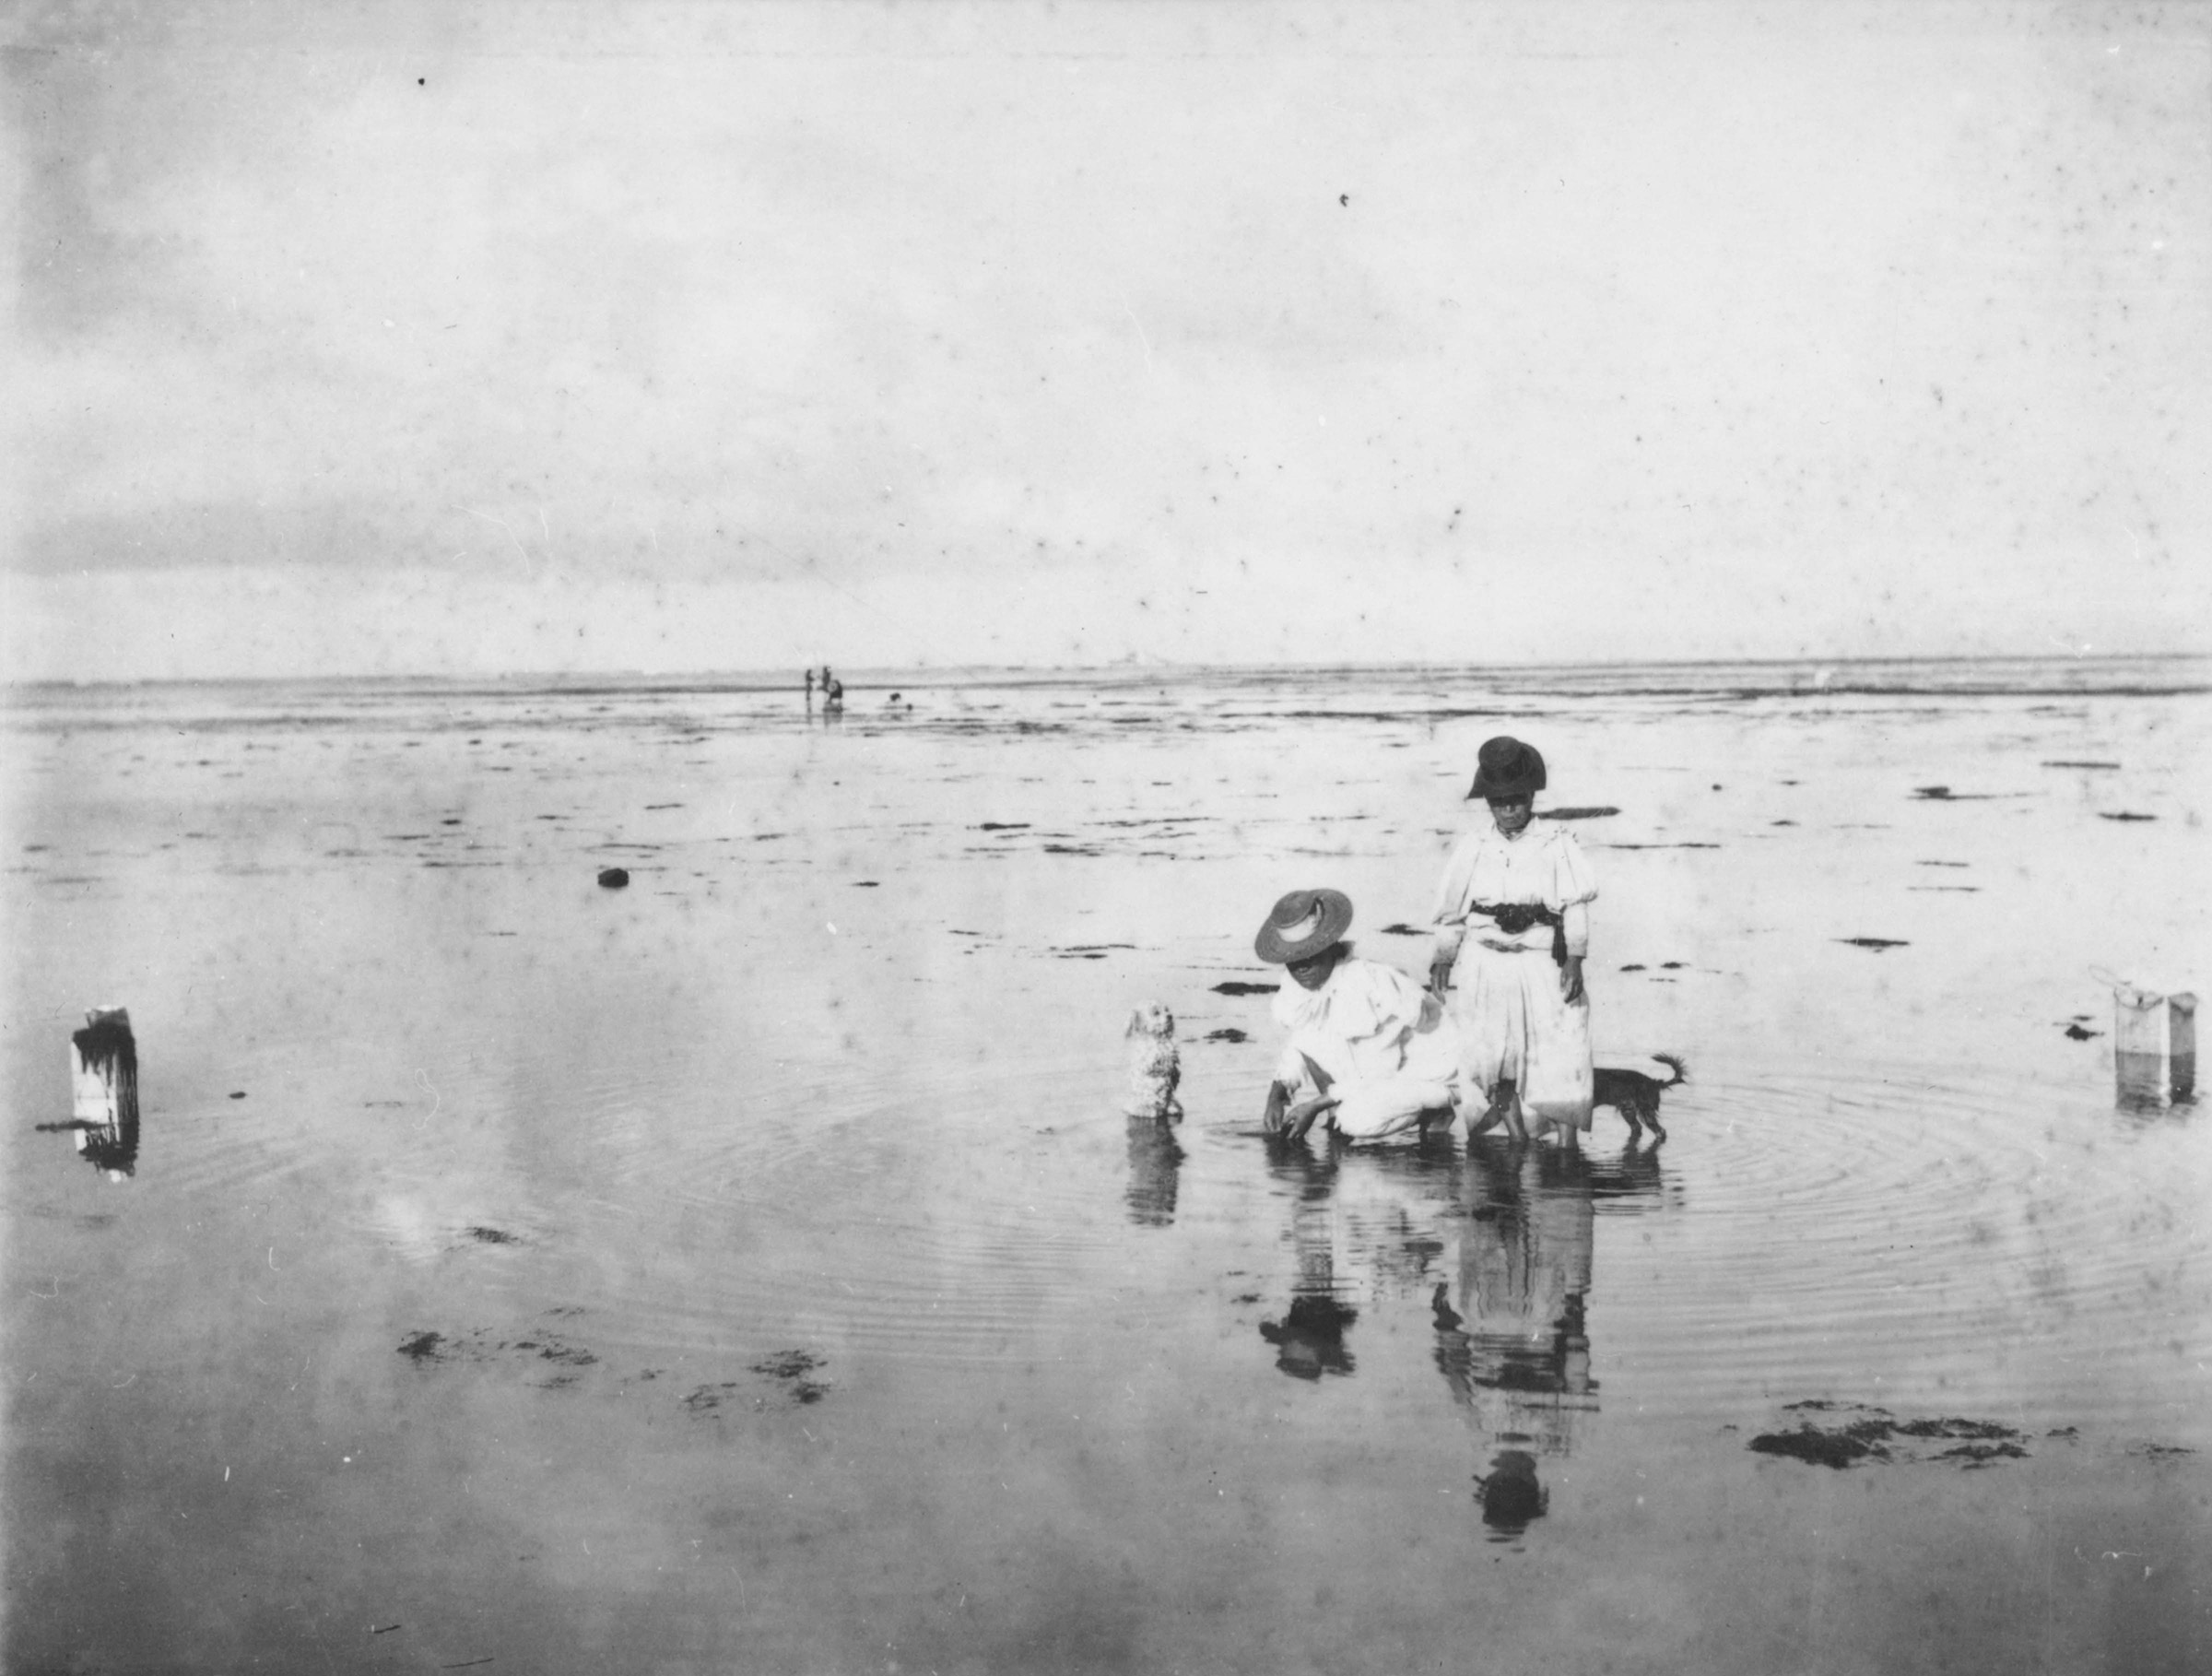 [Women gathering limu on shoreline] Hawaiʻi, ca. 1897. Photo by Frank Davey.